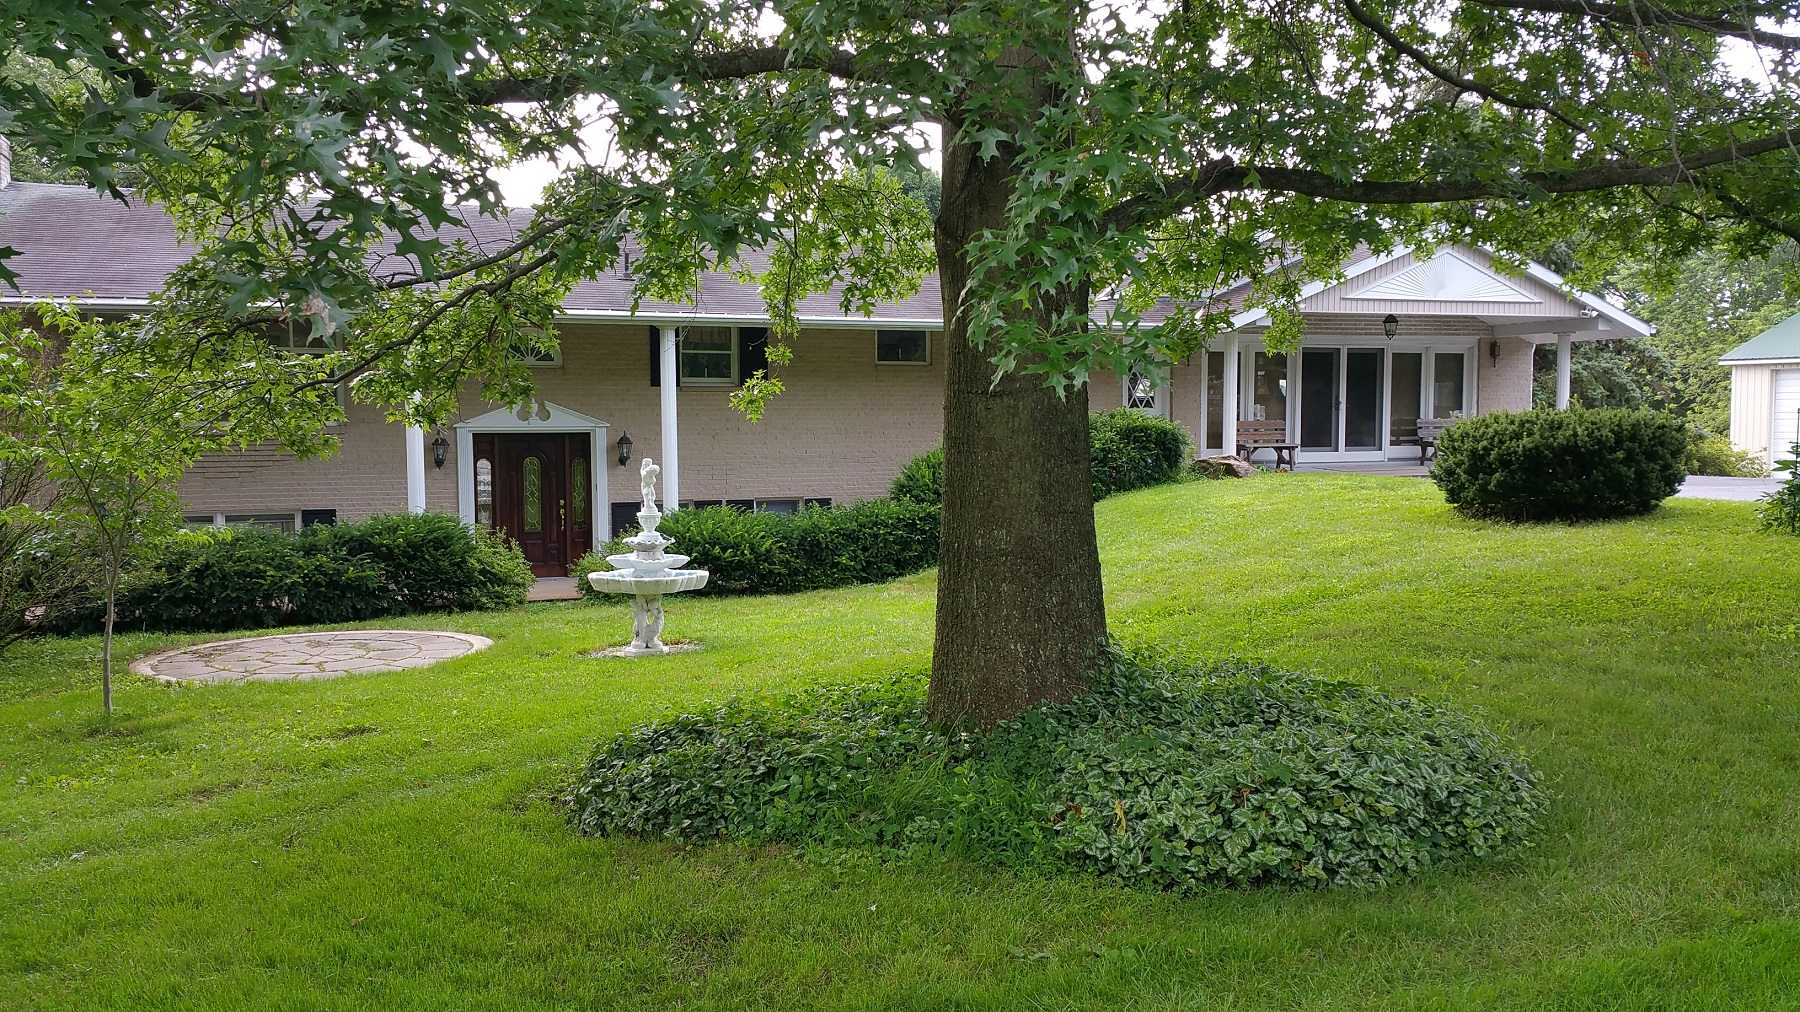 1180 Alpine Road, Wellsville, Pennsylvania 17365